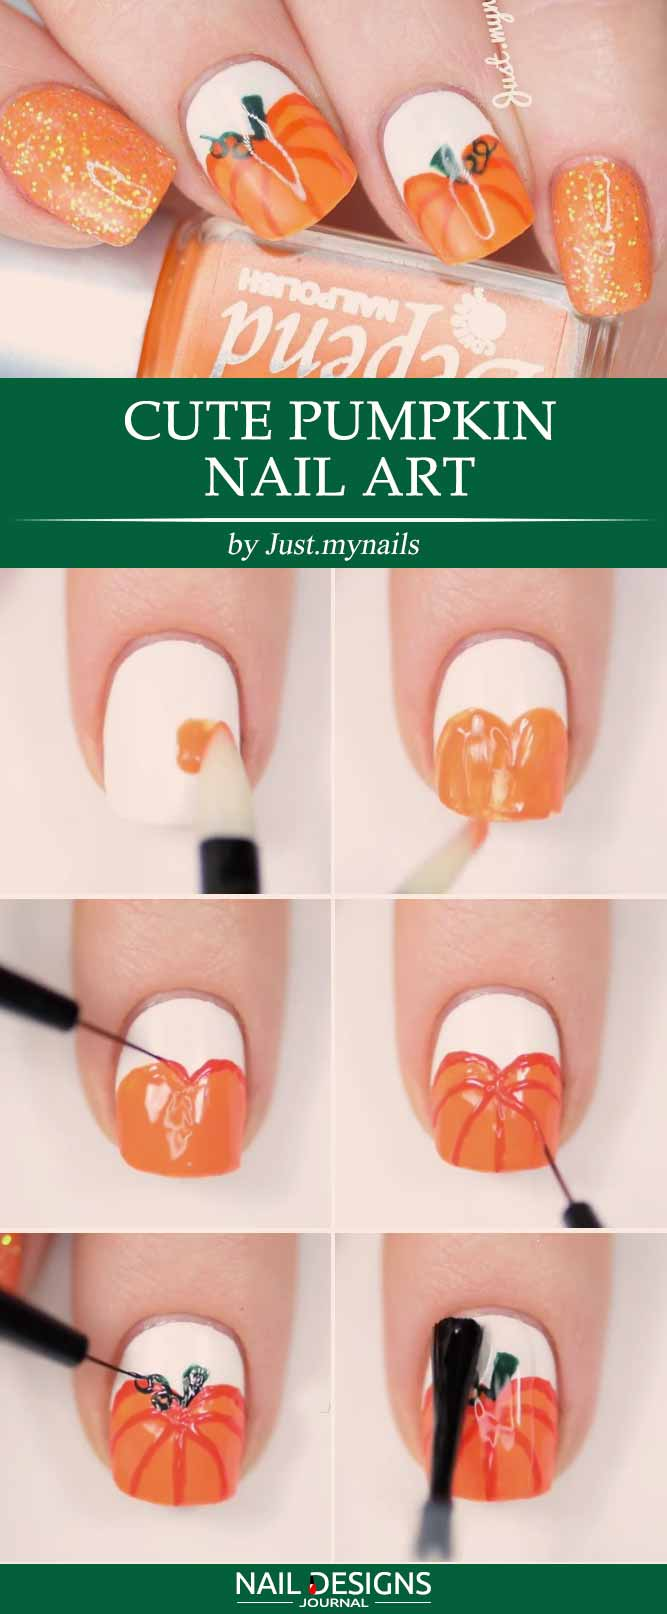 Cute Pumpkin Nail Art